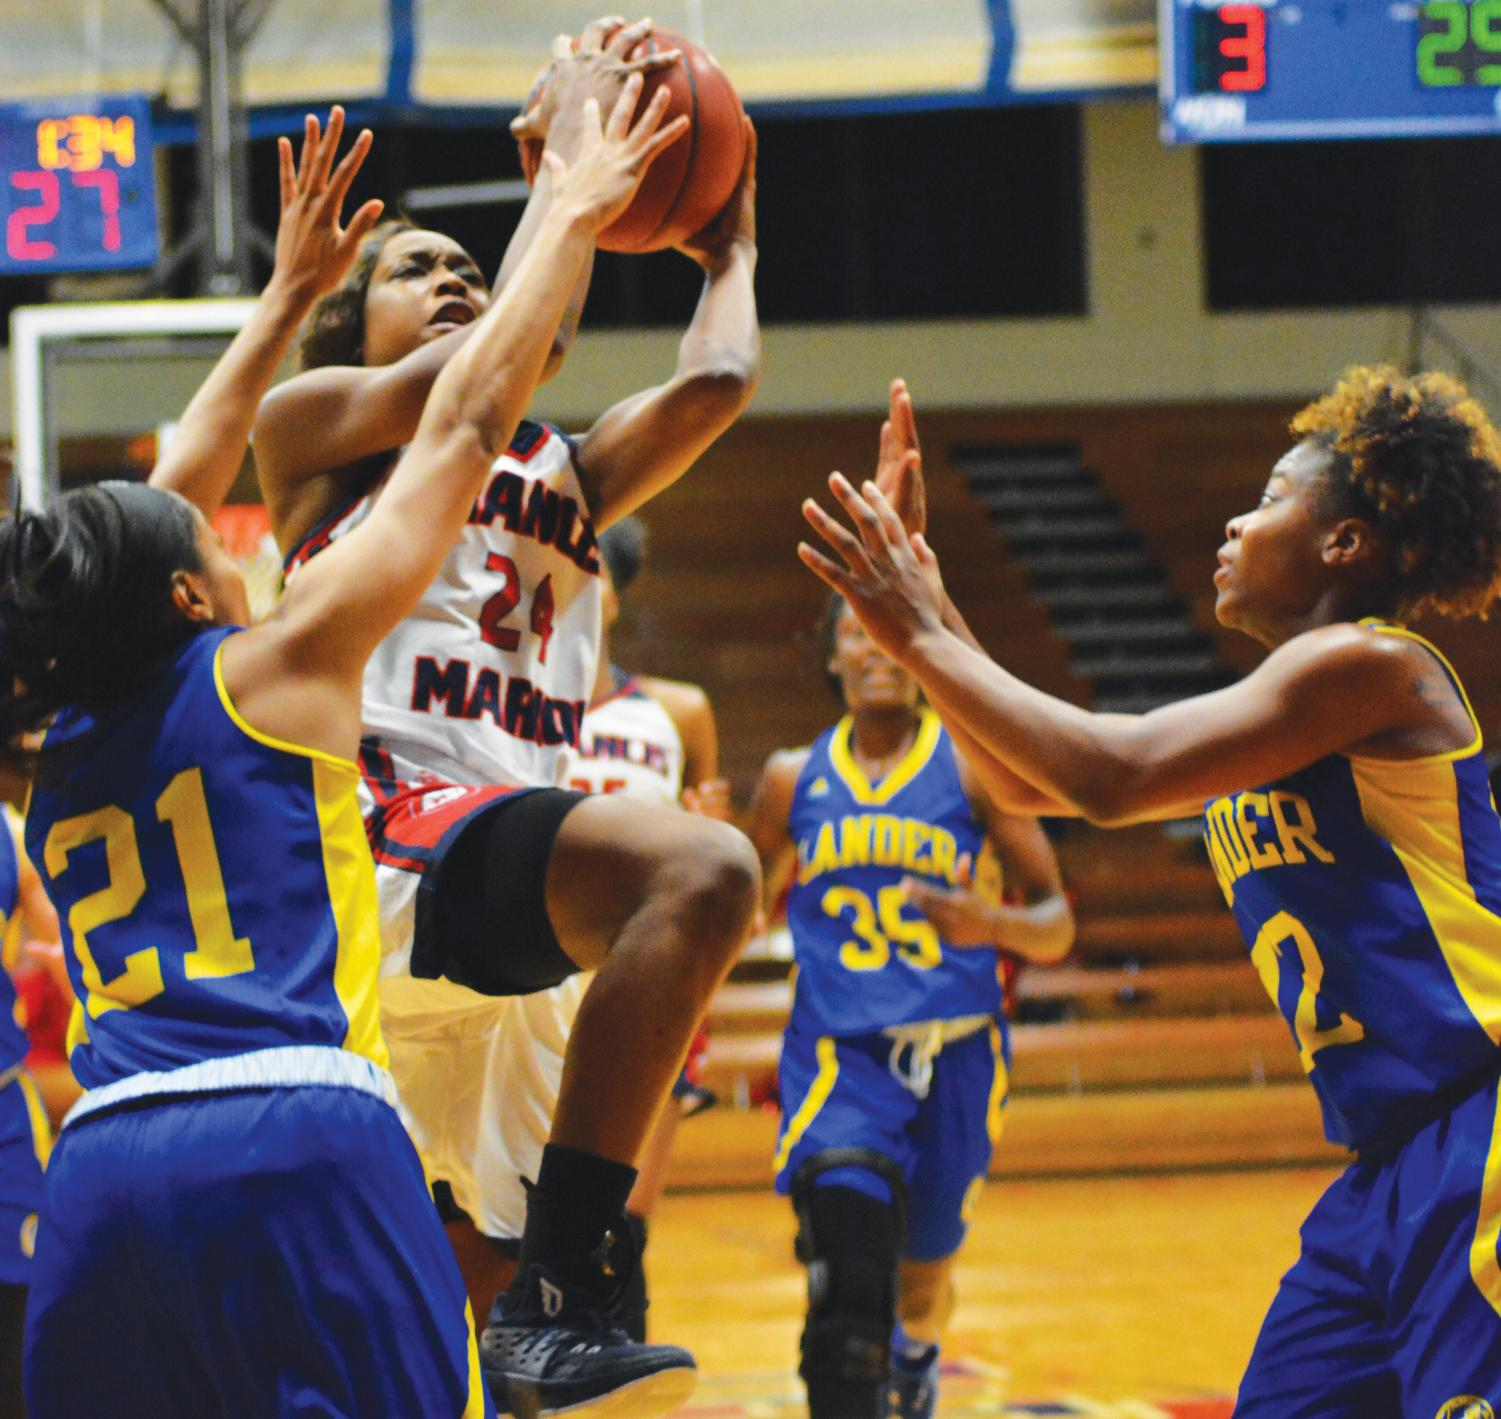 Junior Shaunice Fulmore (24)  lays up the ball against the Lander Bearcats. During this game, Fulmore scored 15 points.